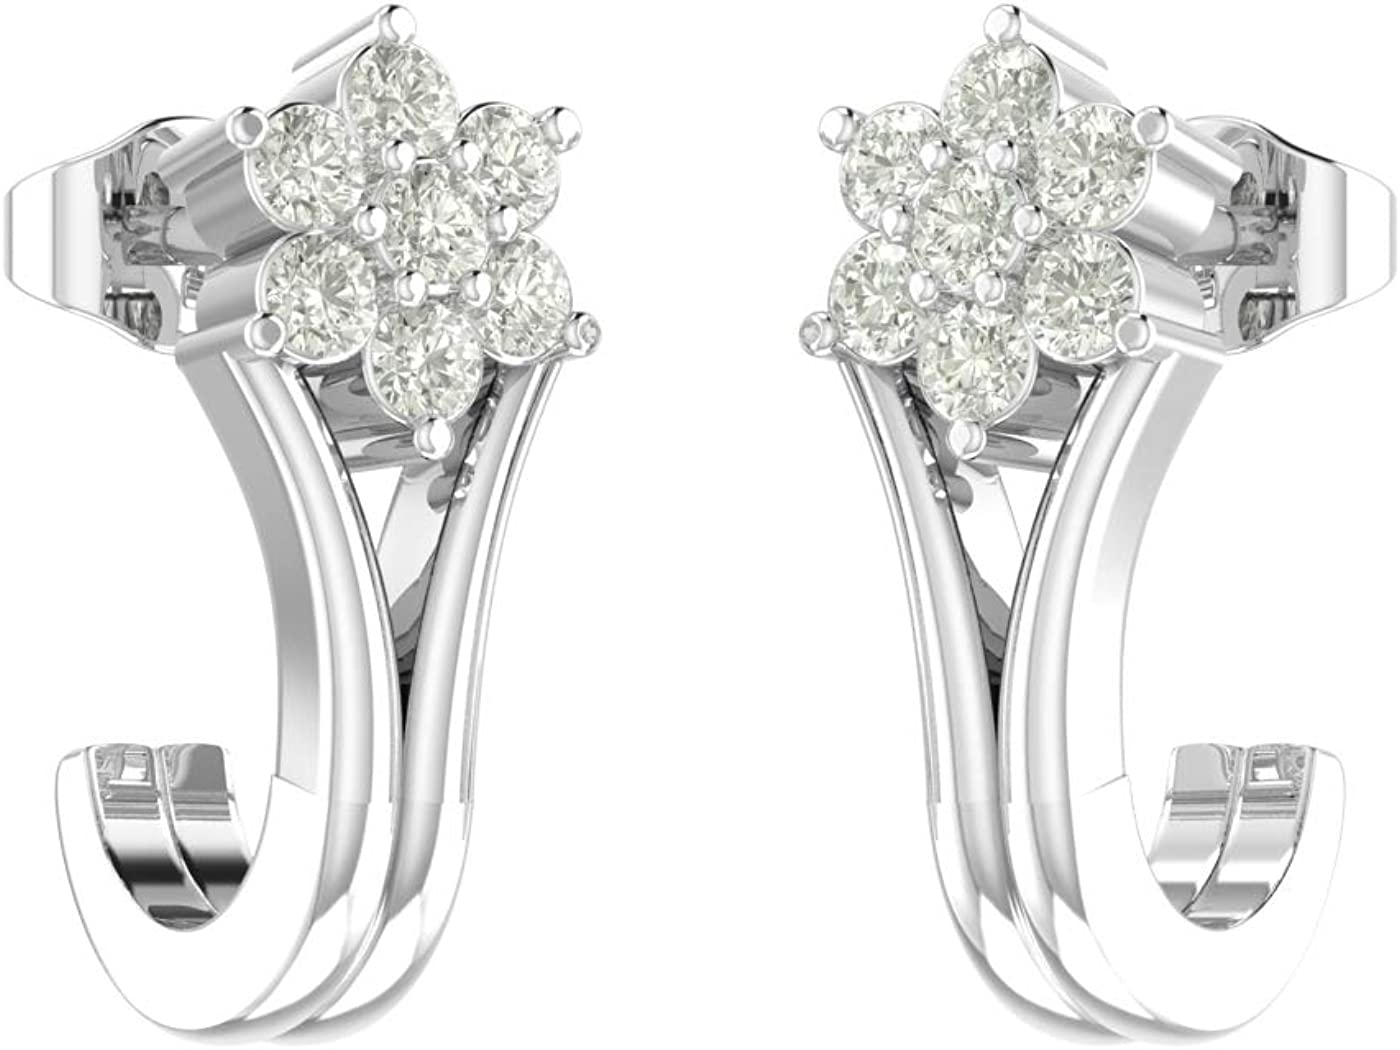 55% OFF Amayra 925 Sterling Silver Diamond P OFFicial store With Earring Butterfly Stud